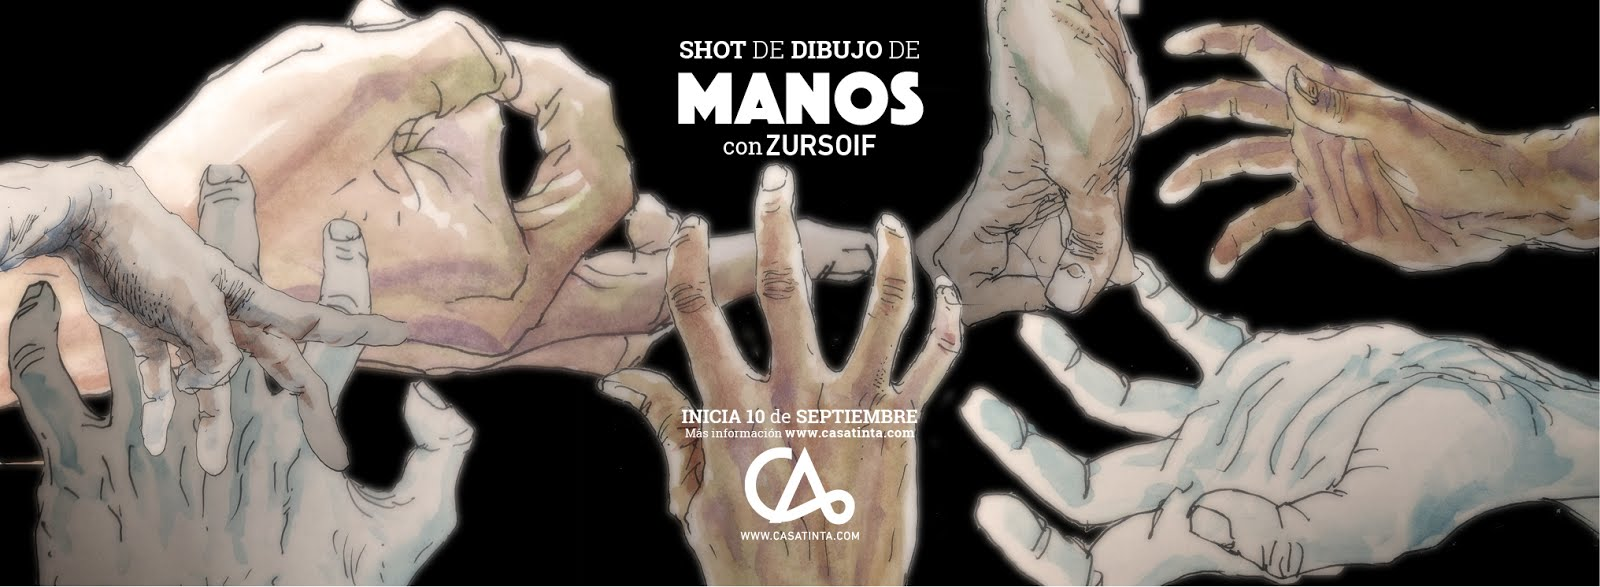 SHOT DIBUJO DE MANOS // 10 sept